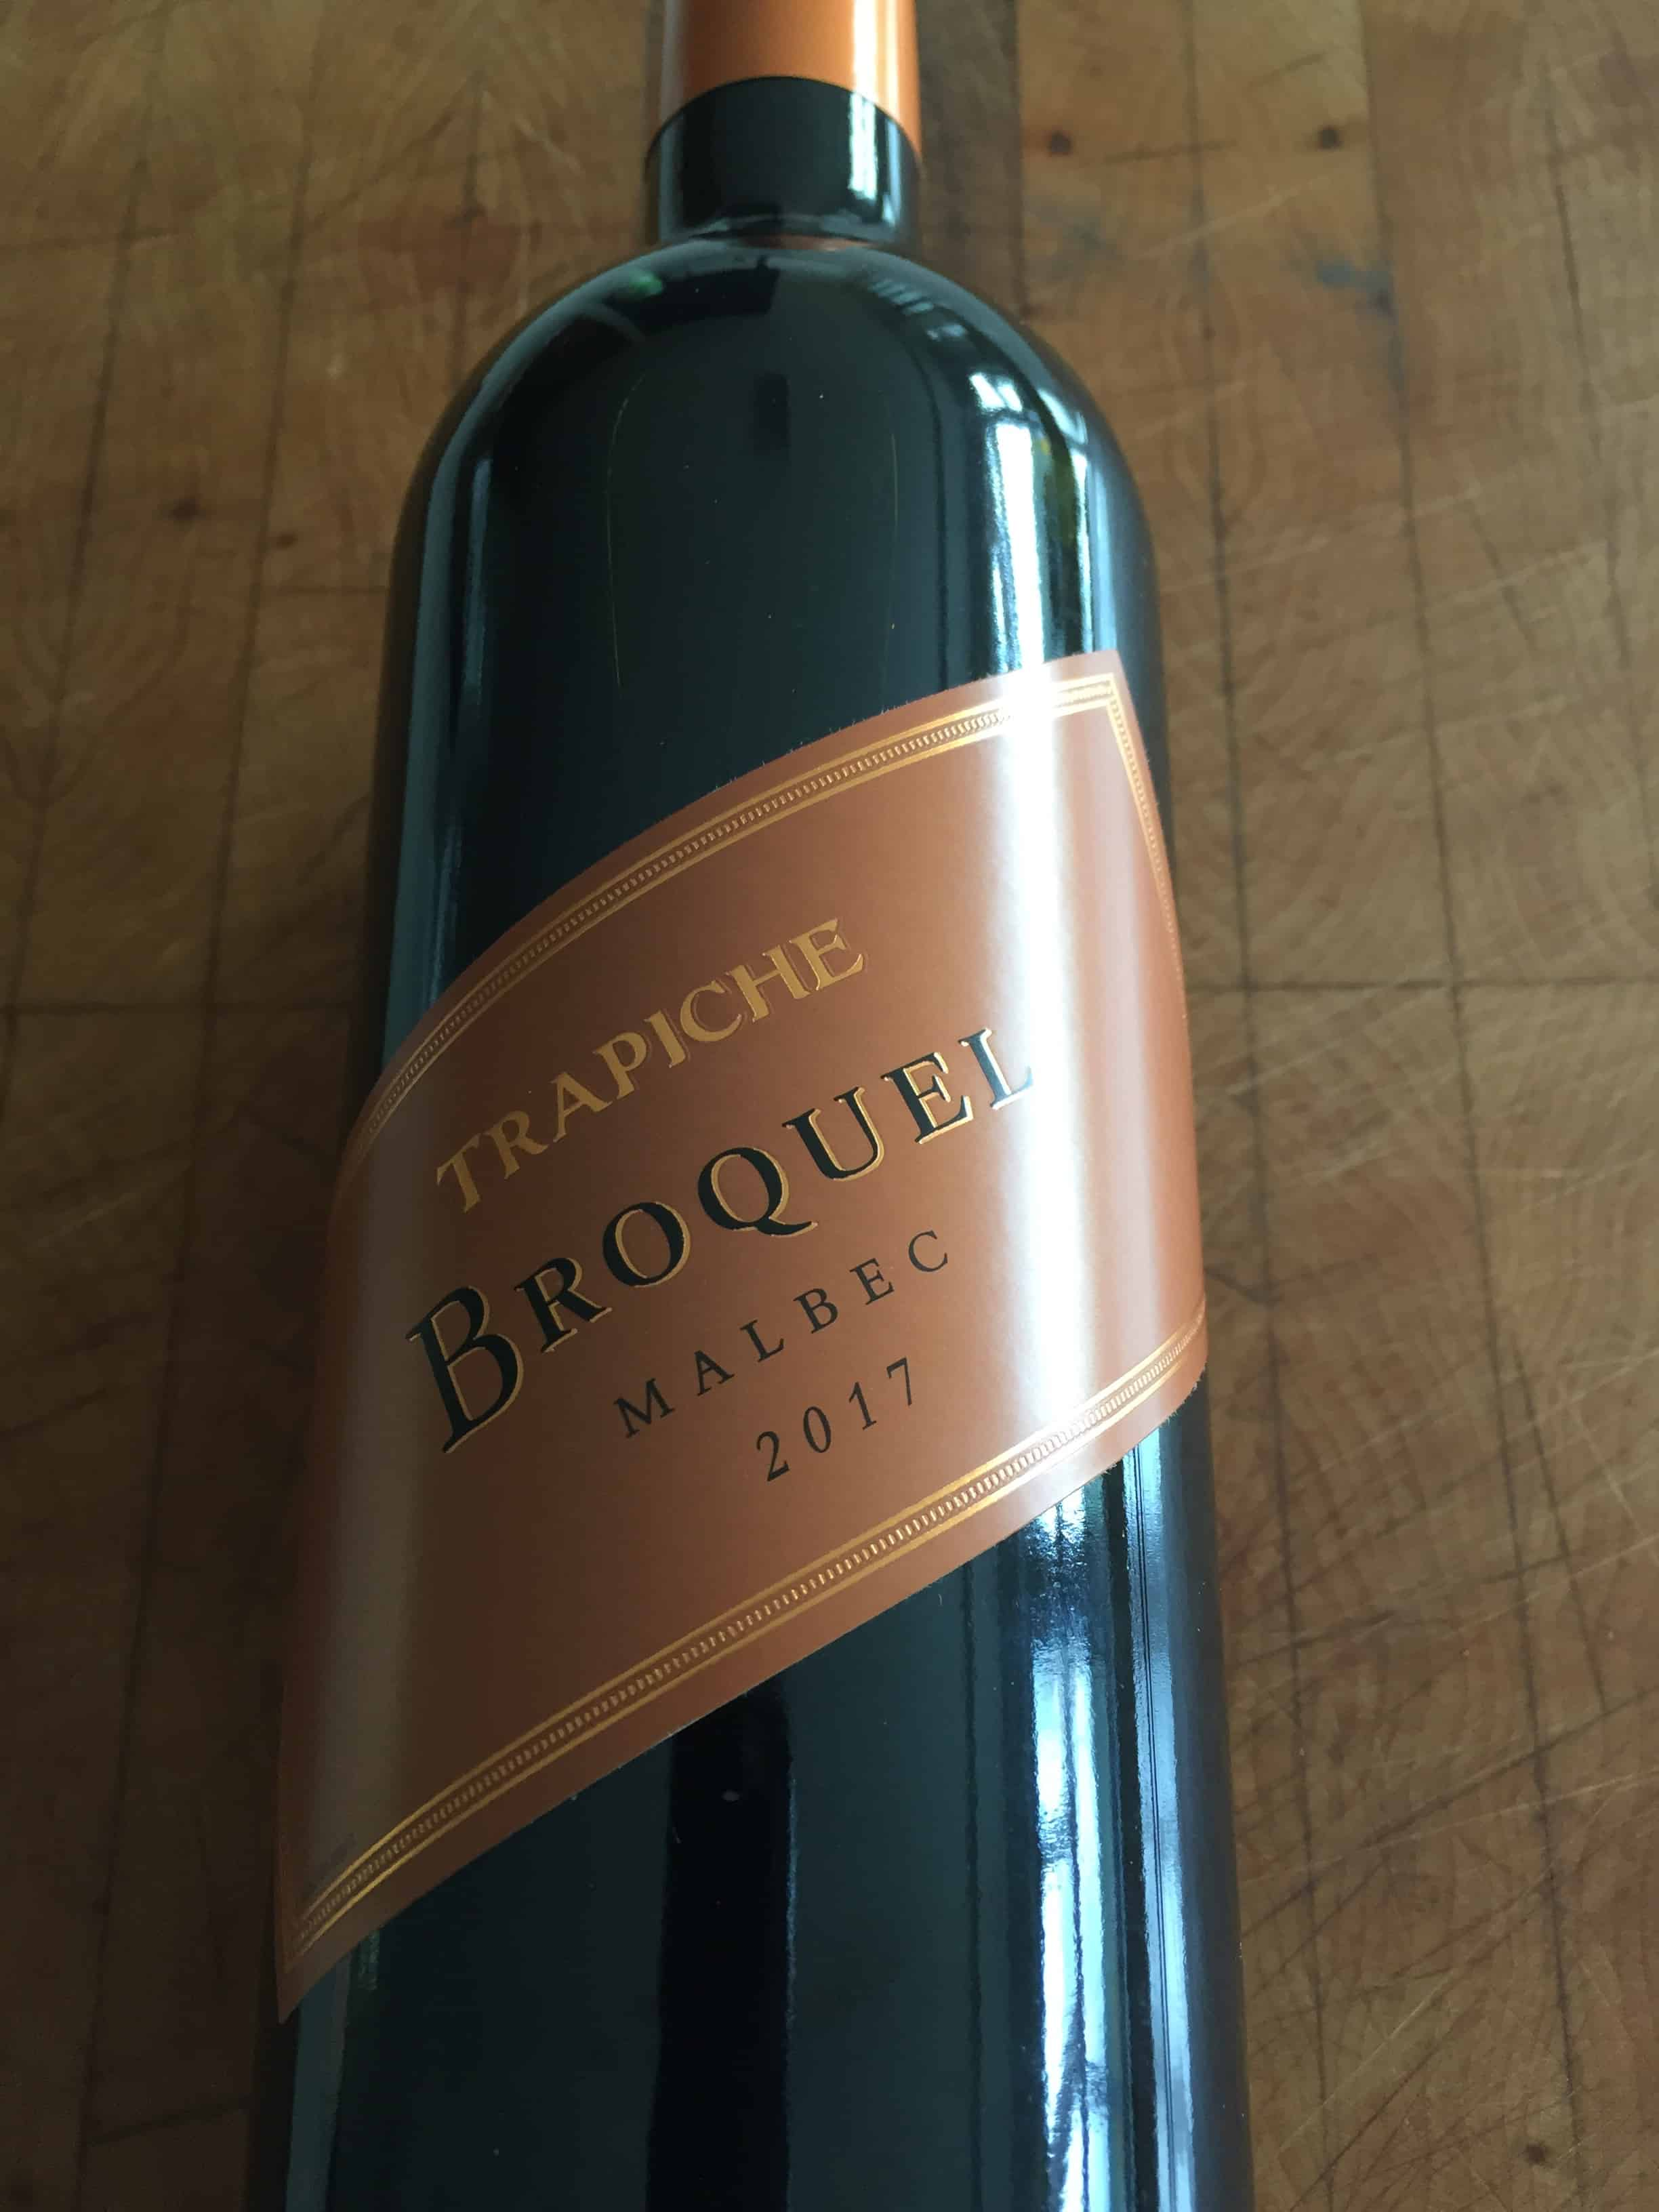 Front label of Trapiche Broquel 2017 from Trader Joe's